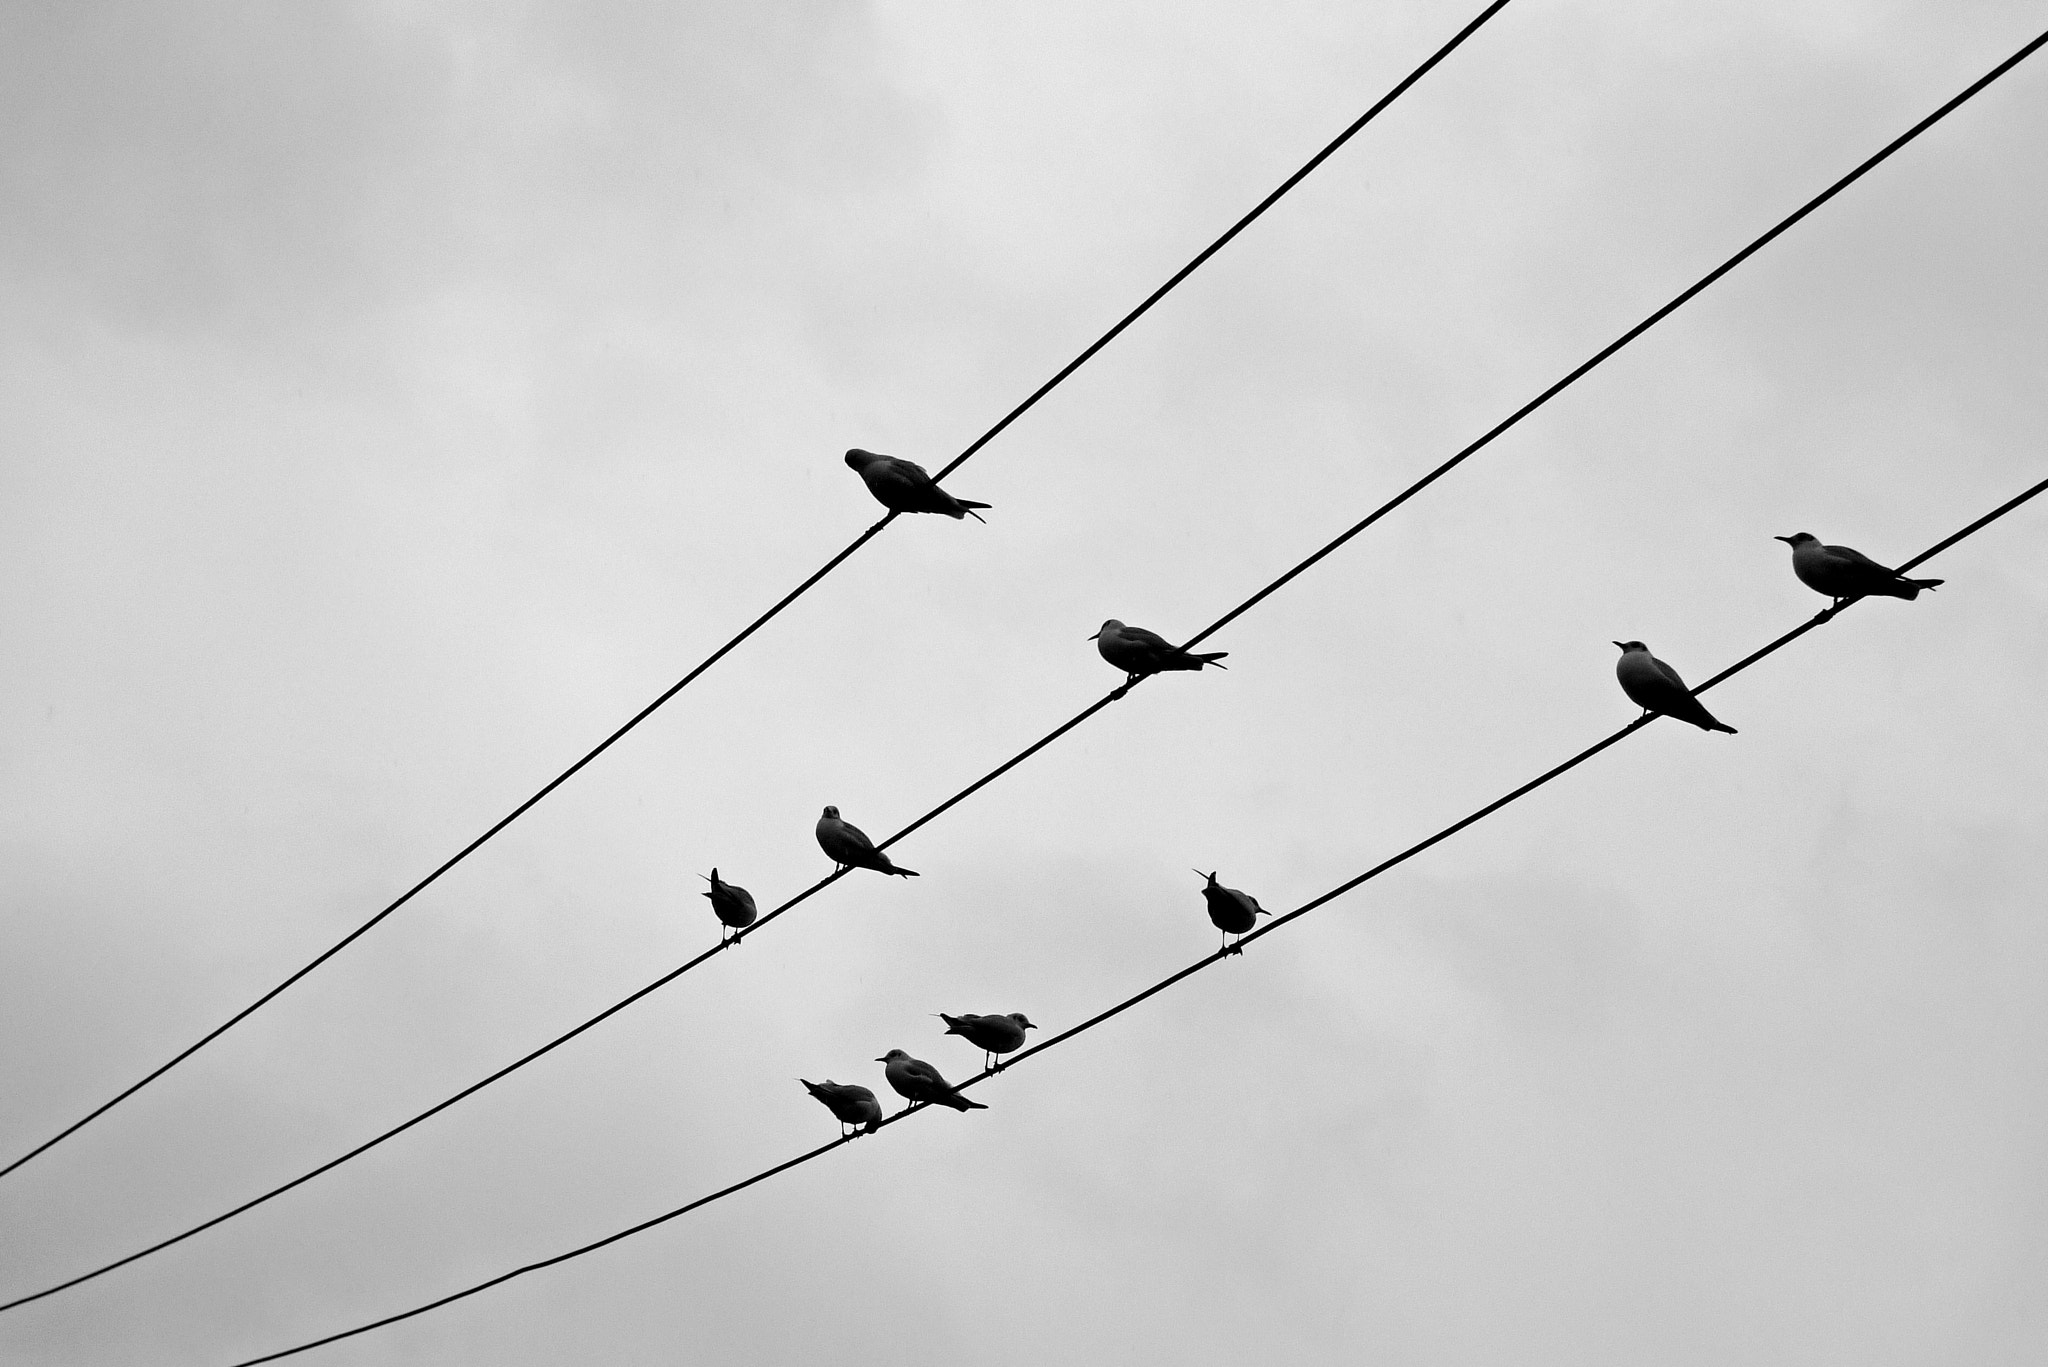 Photograph birds song by Ayhan Kaya on 500px